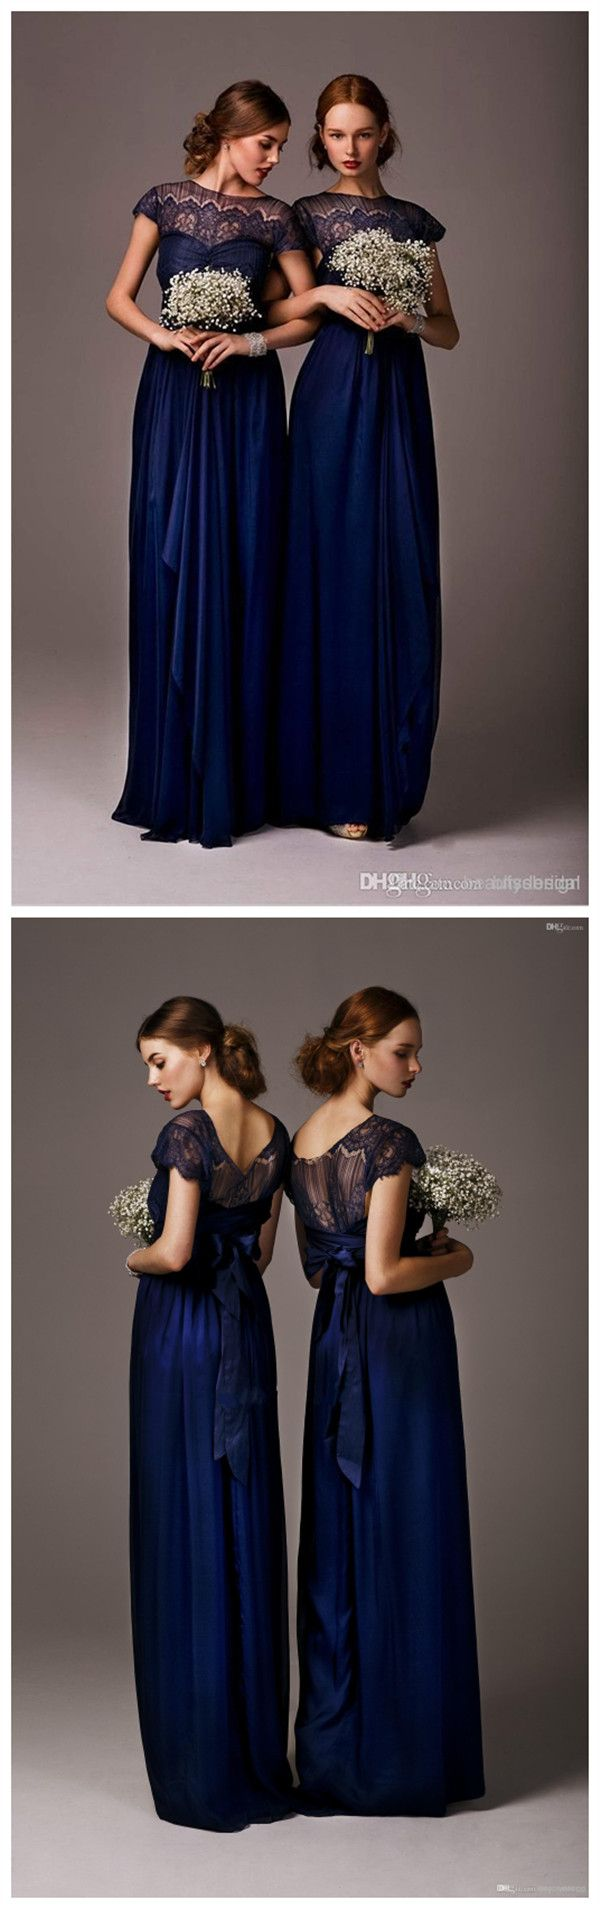 Jewel toned bridesmaid dresses falls must have wedding look 2017 navy blue bateau sheer lace long cheap bridesmaid dresses cap sleeves floor length evening dress prom gowns wedding party dress 2016 ombrellifo Choice Image